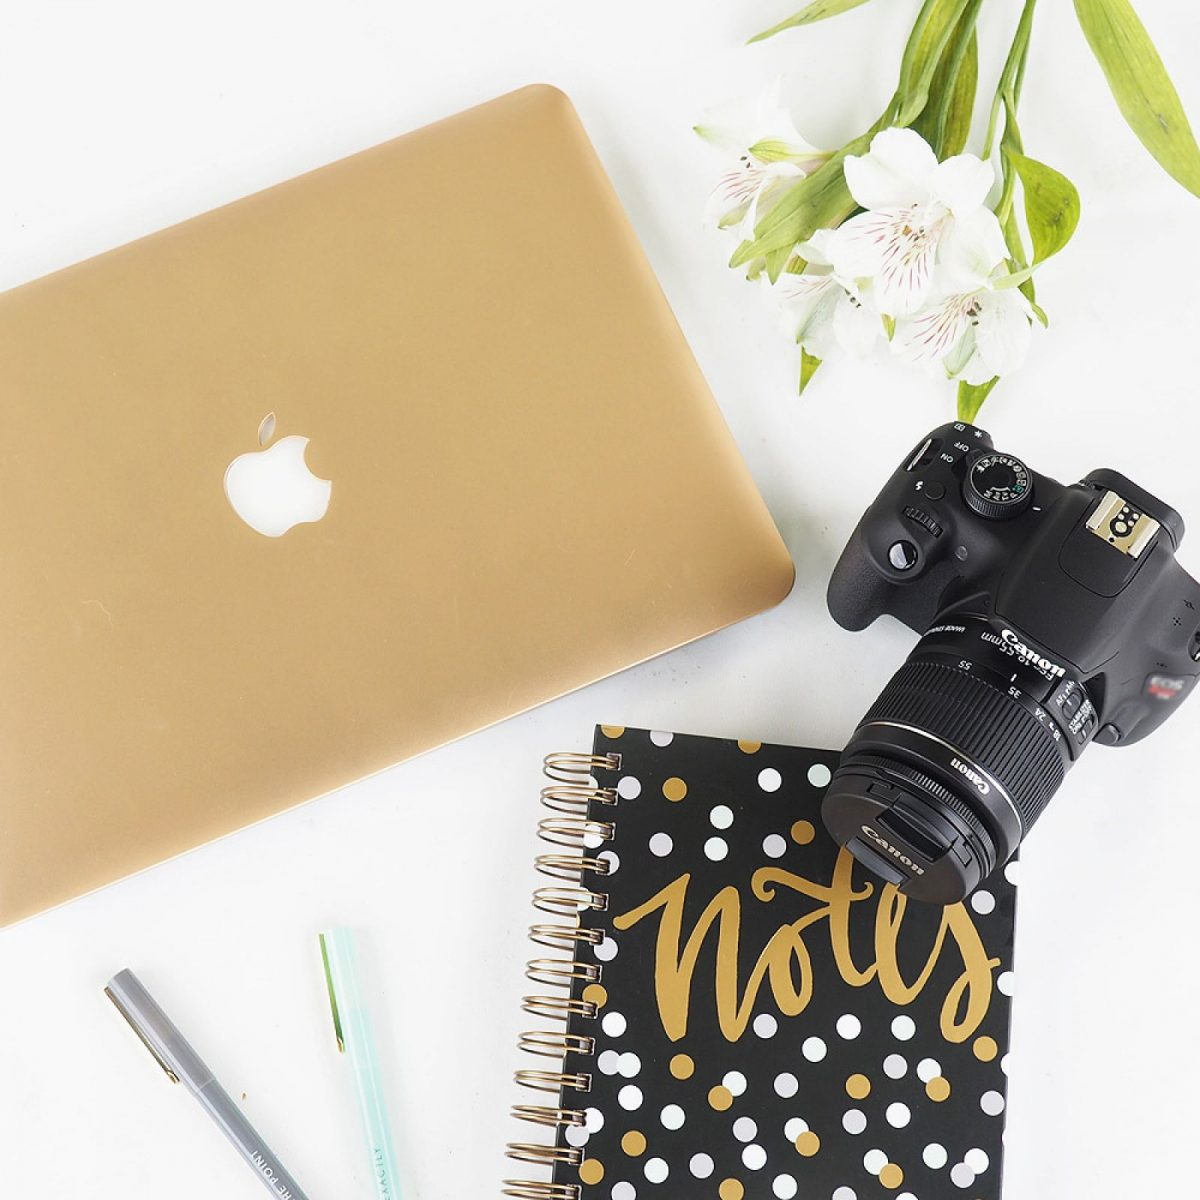 Macbook Air + Canon Rebel Kit GIVEAWAY & weekly linkup